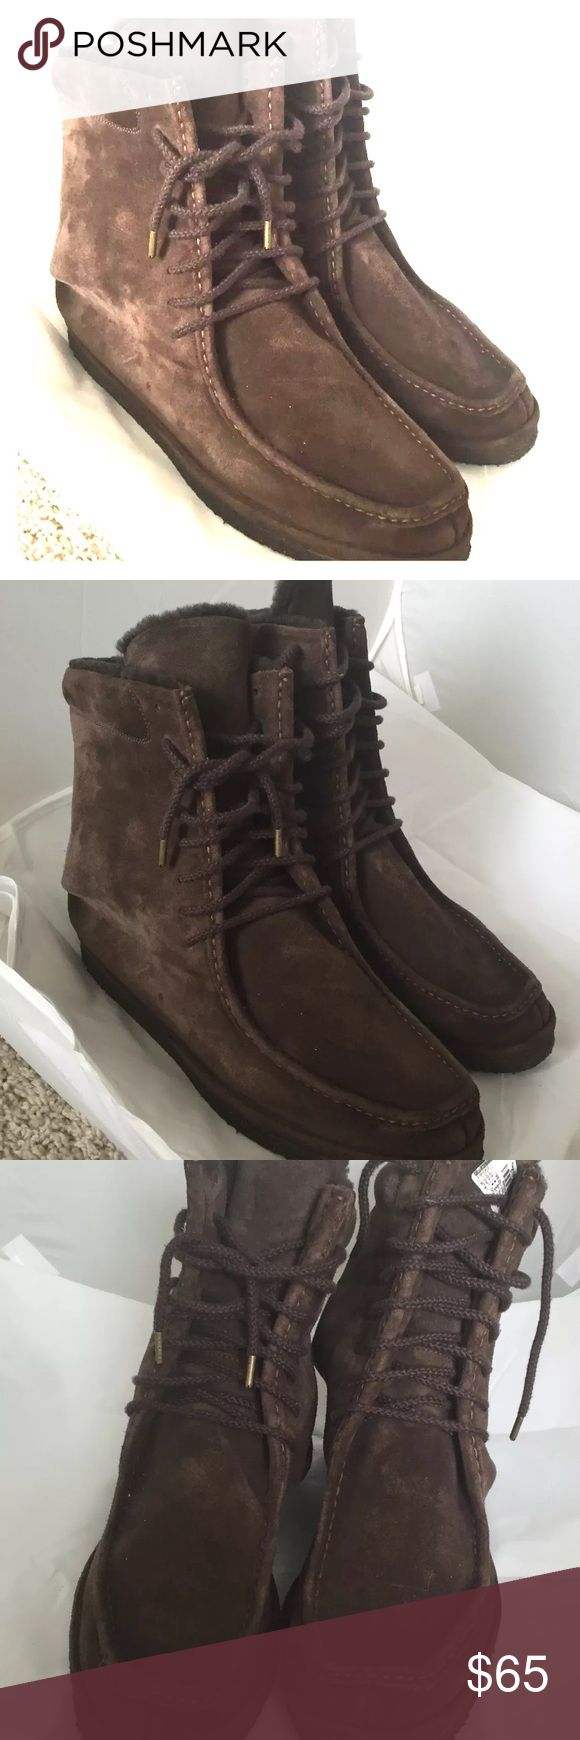 "FLORSHEIM DUCKIE Suede Chukka Boots Ankle sz 13 These boots are beautiful. Minimal wear to sole. Suede looks amazing. Lined with faux fur. Laces look good too. Sz 13. Mens. Measures approx 12"" from toe to heel. Luscious chocolate brown Florsheim Shoes Chukka Boots"